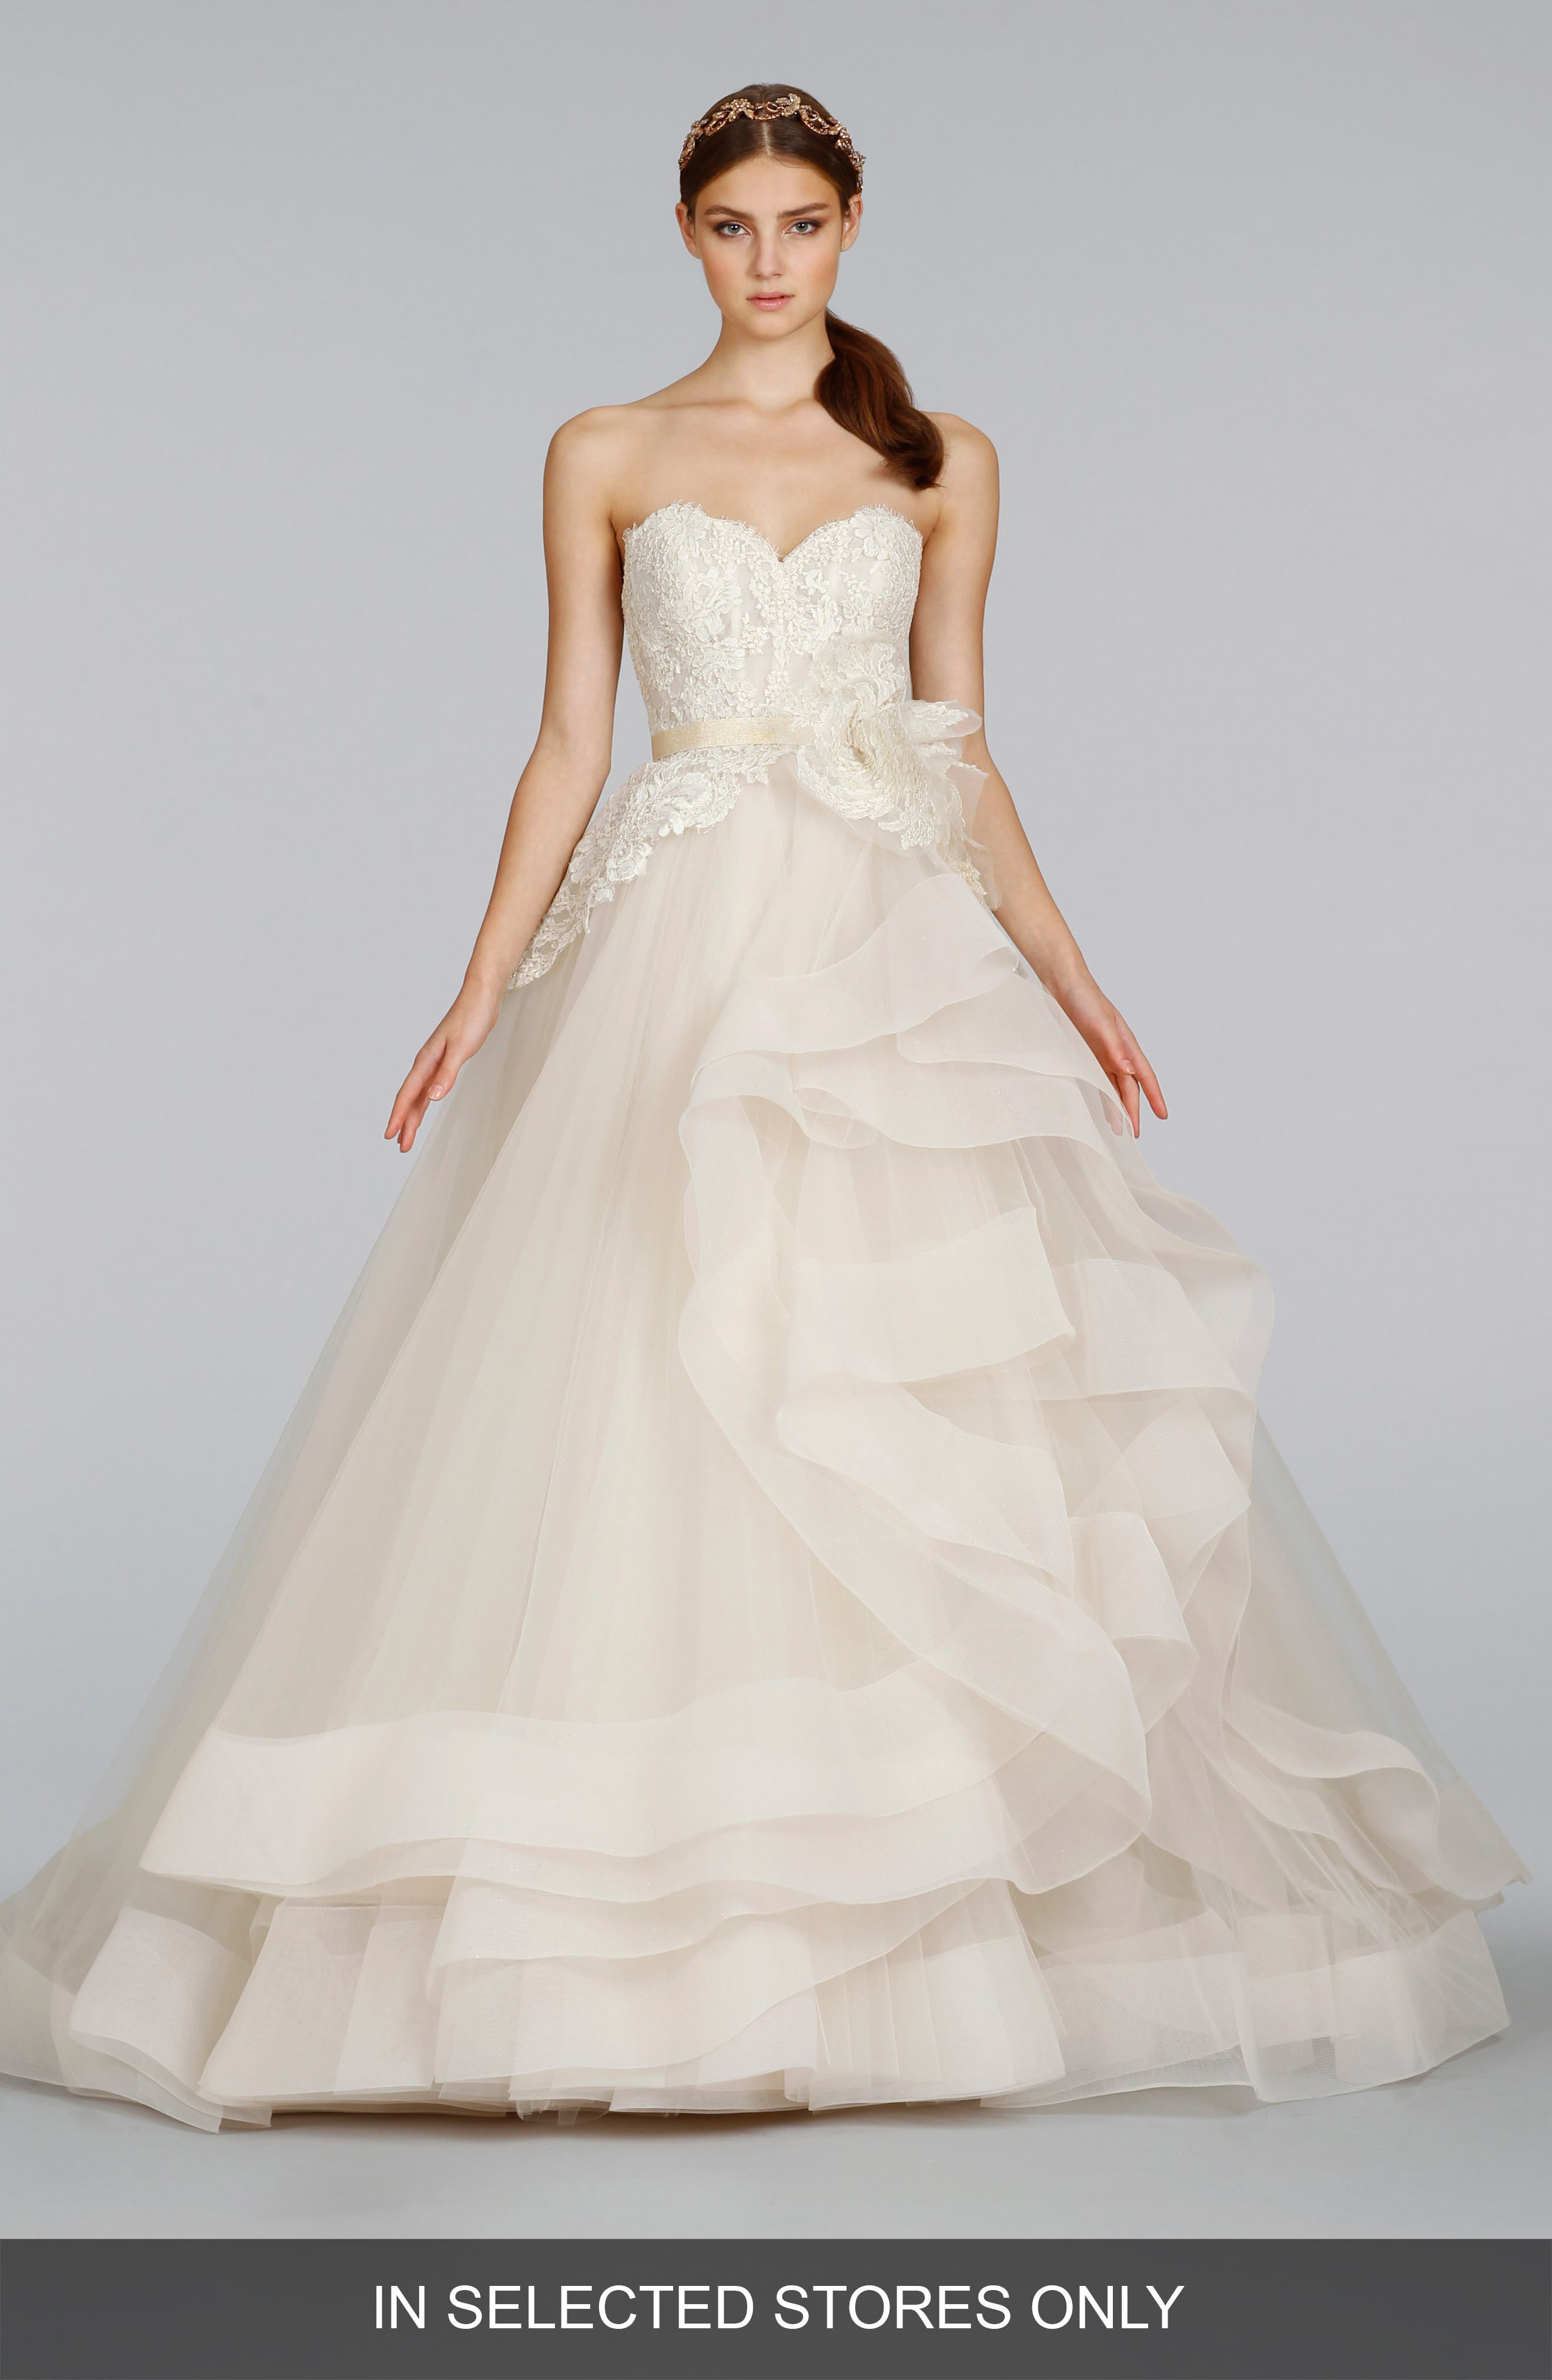 Alternate Image 1 Selected - Lazaro Strapless Lace & Layered Tulle Ballgown